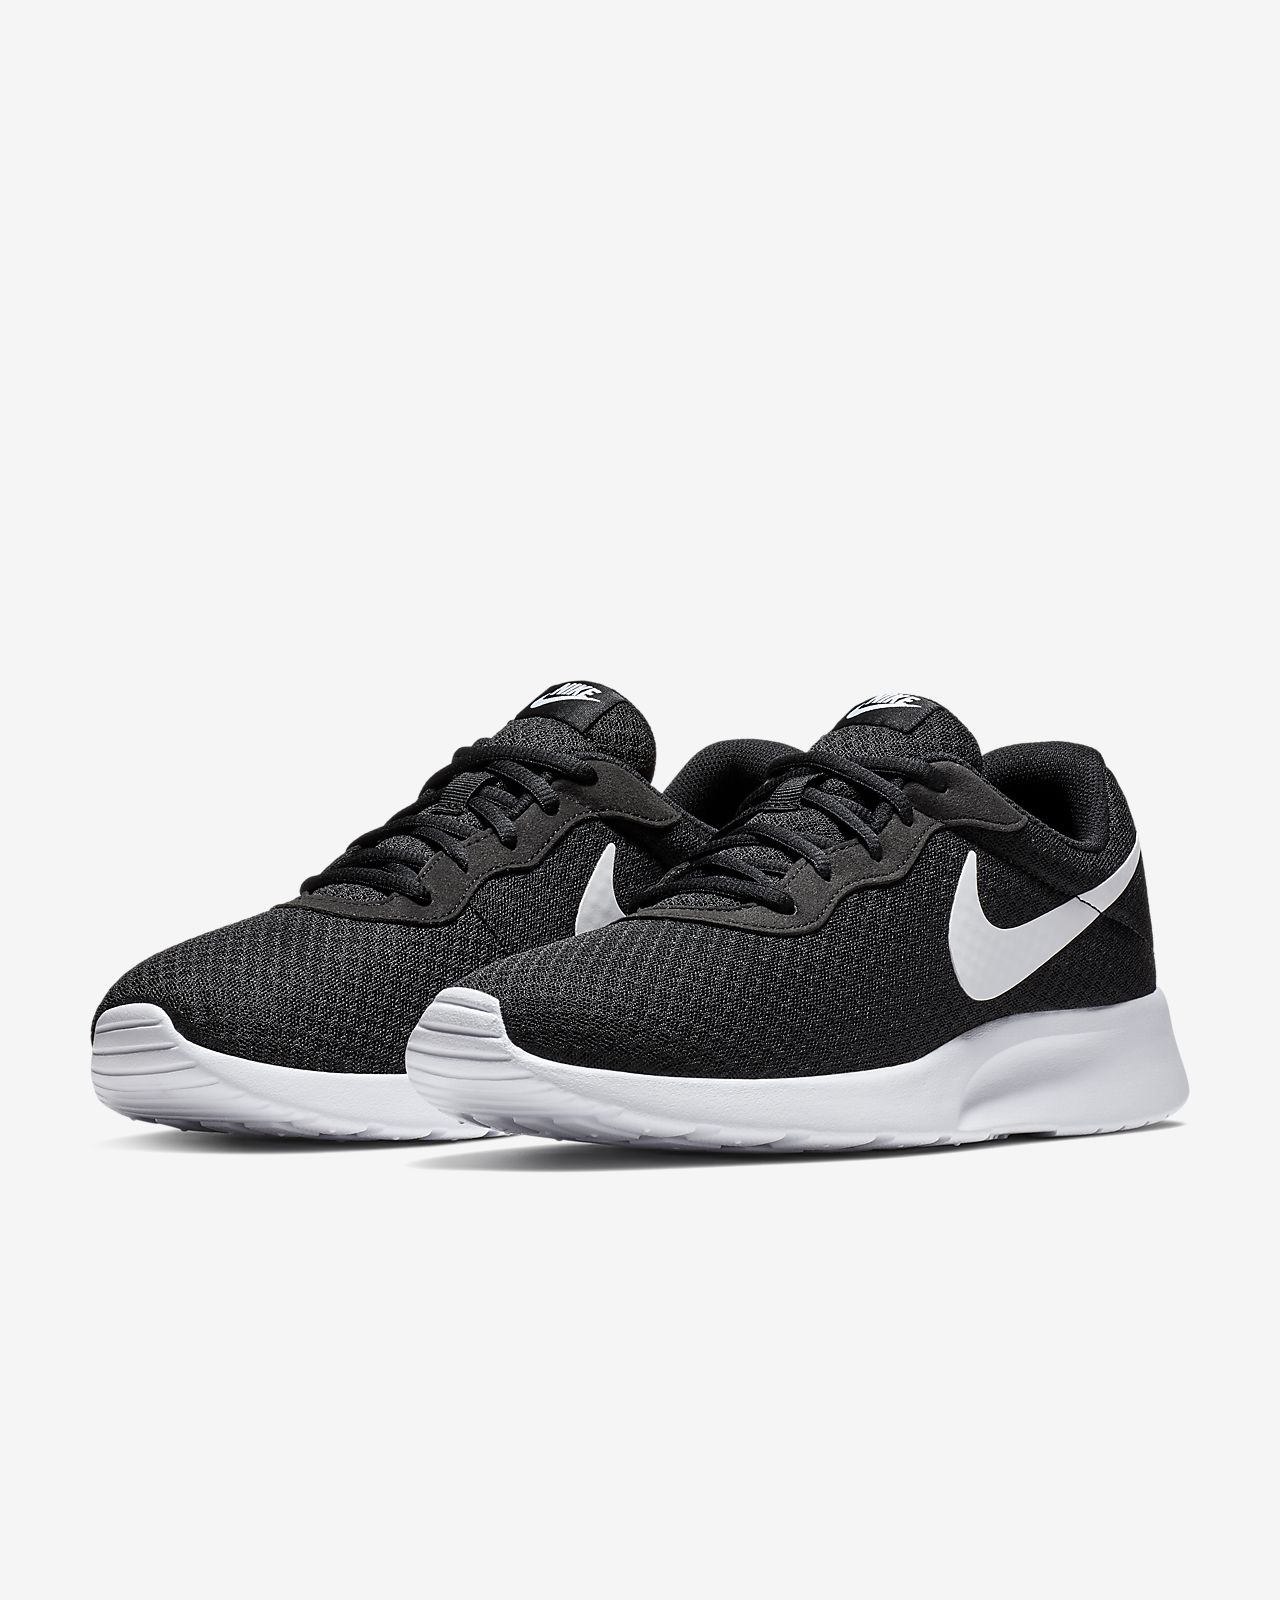 low priced a70b3 ad405 Low Resolution Nike Tanjun Men s Shoe Nike Tanjun Men s Shoe